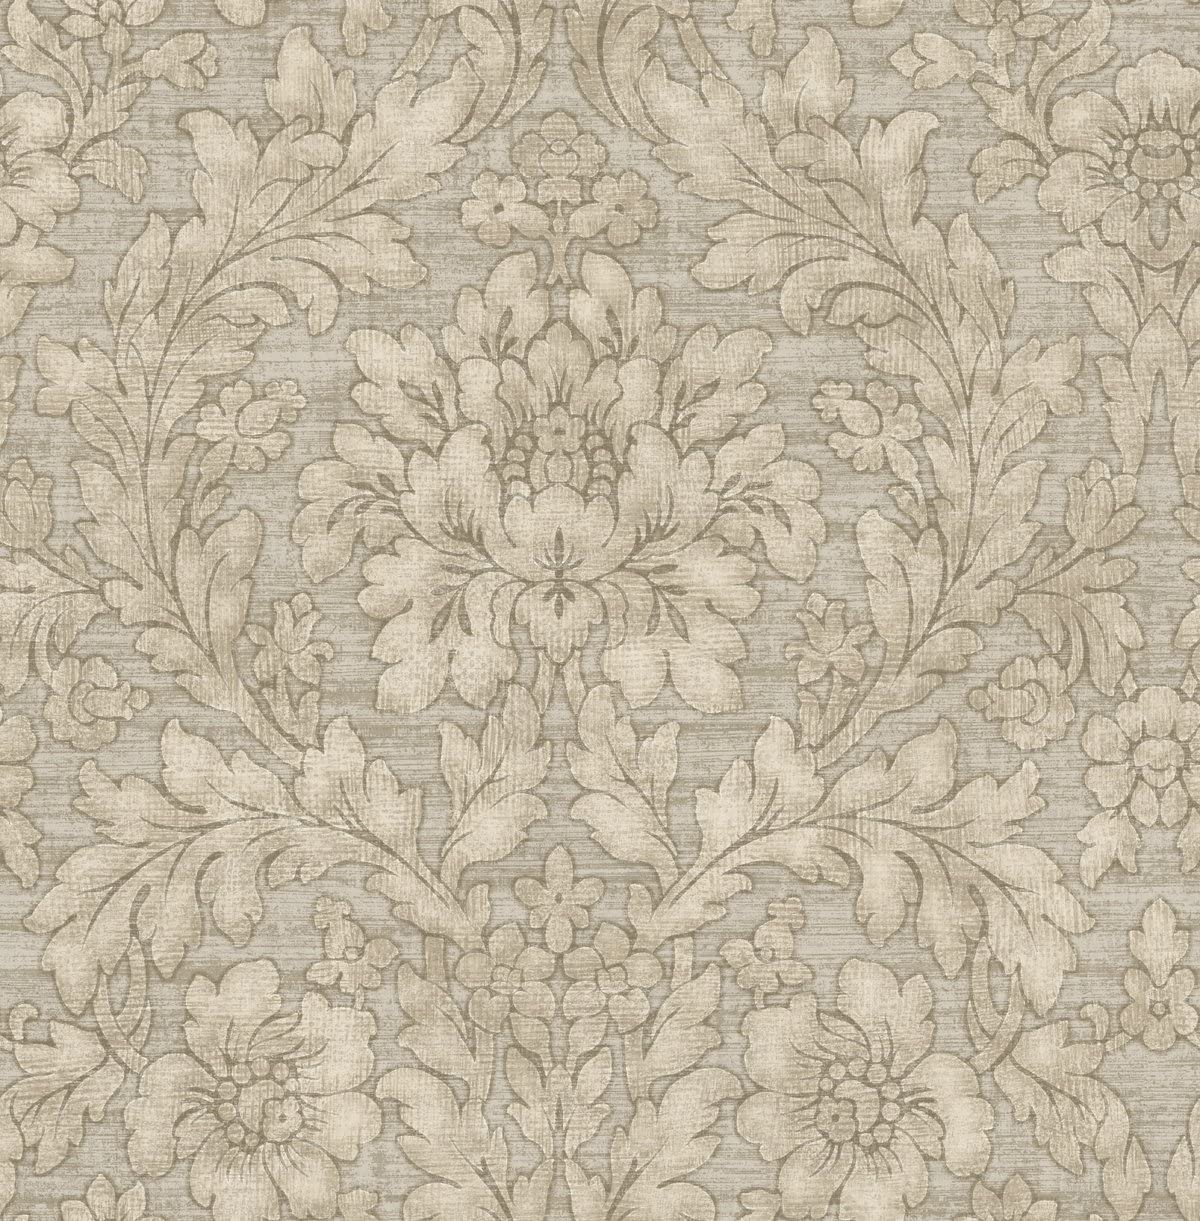 Vintage Floral Wallpaper Damask Arts And Crafts Silver Gray Bronze